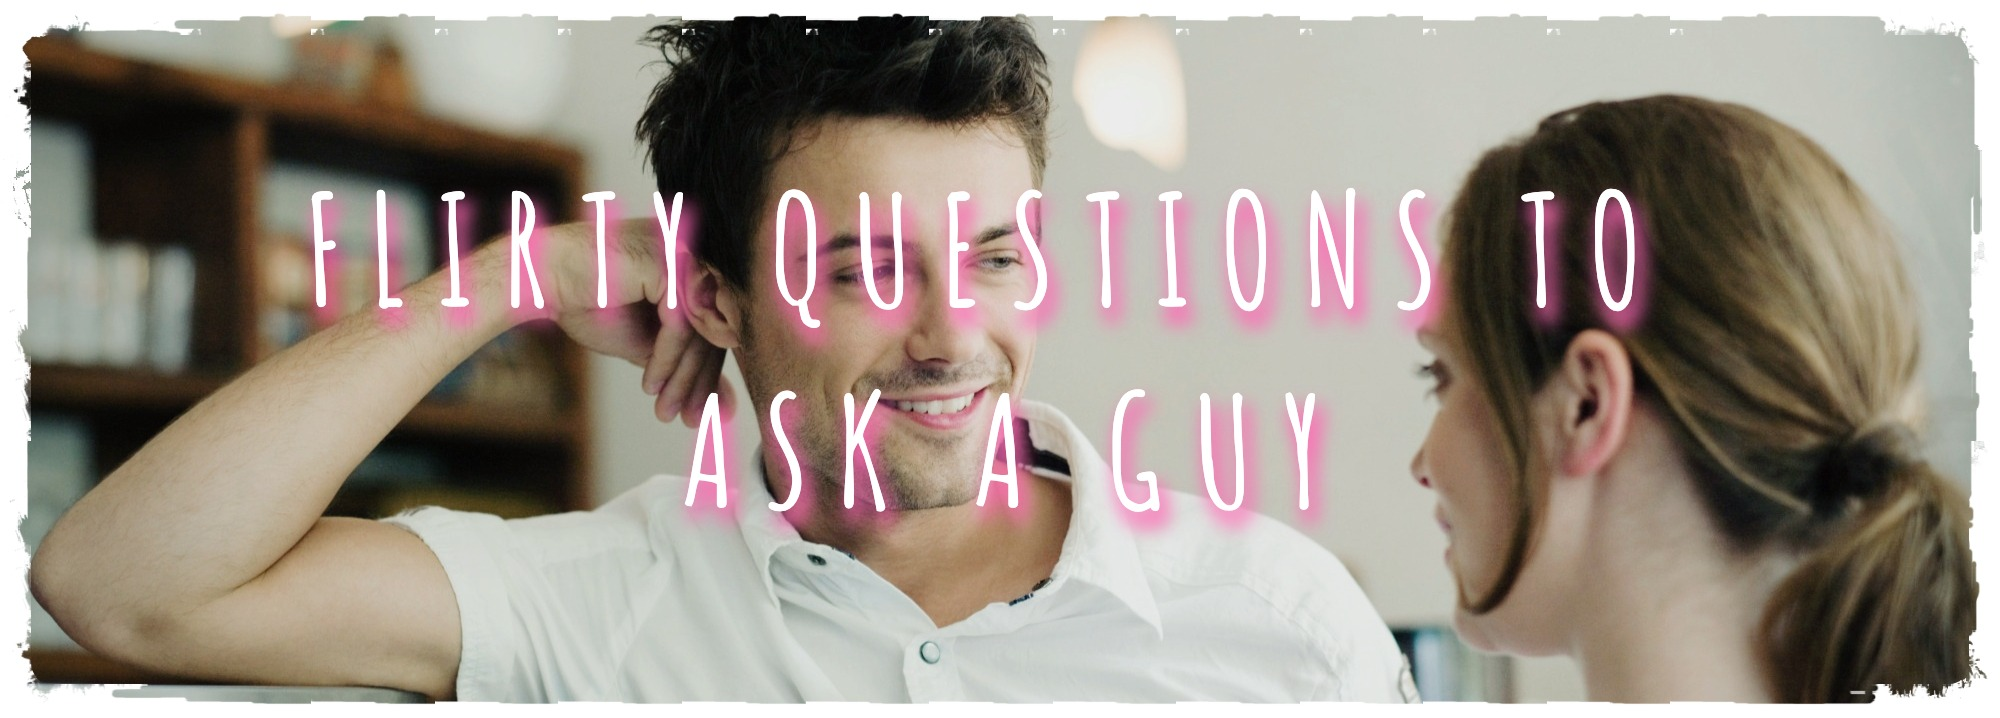 Important questions to ask a guy you are hookup